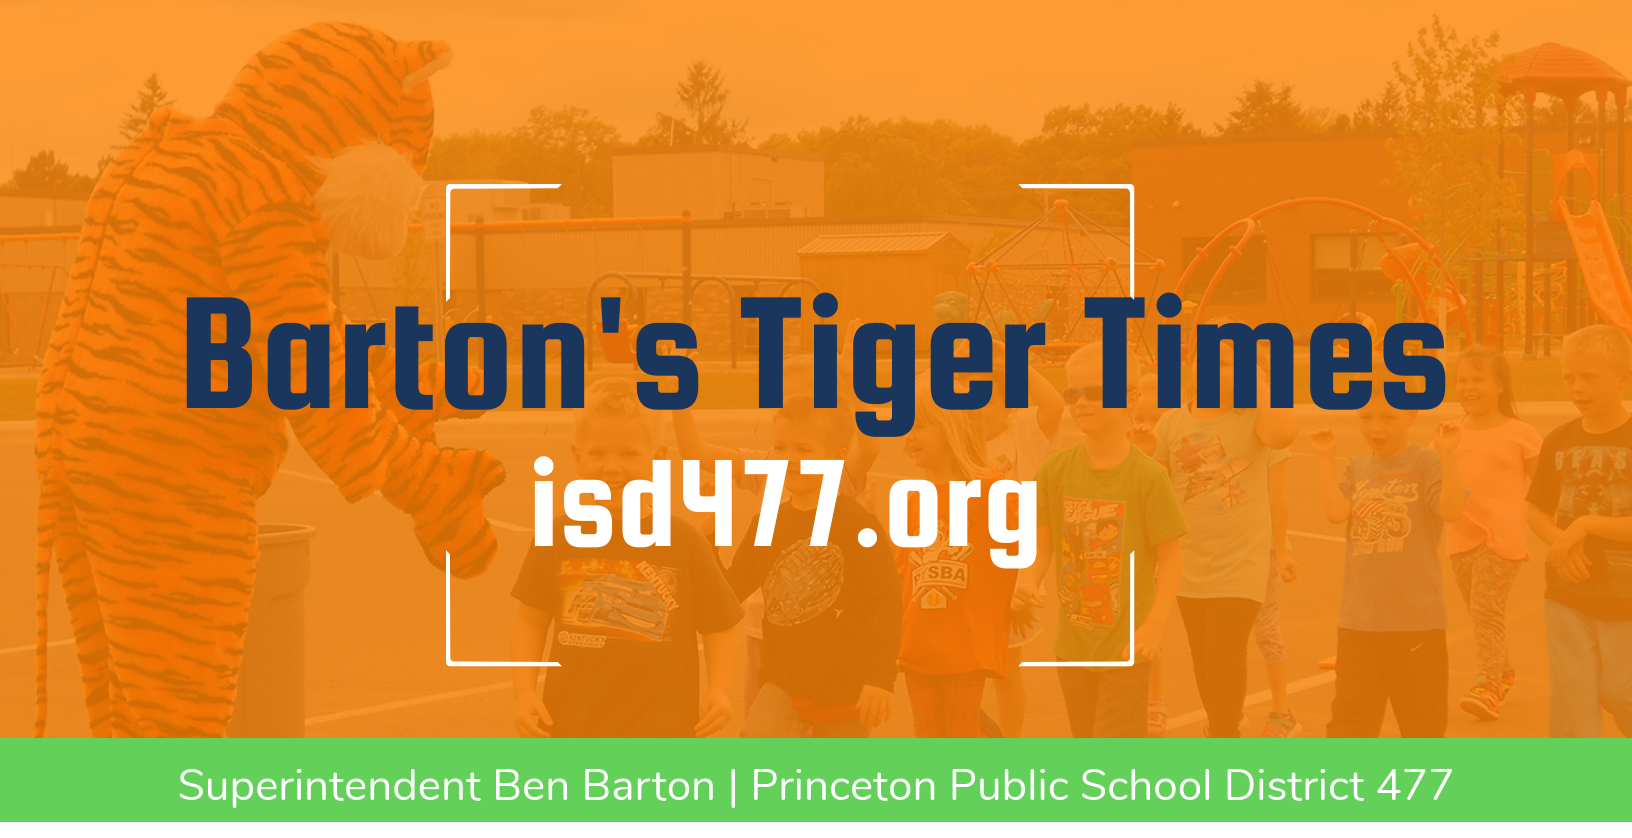 Header for Barton's Tiger Times